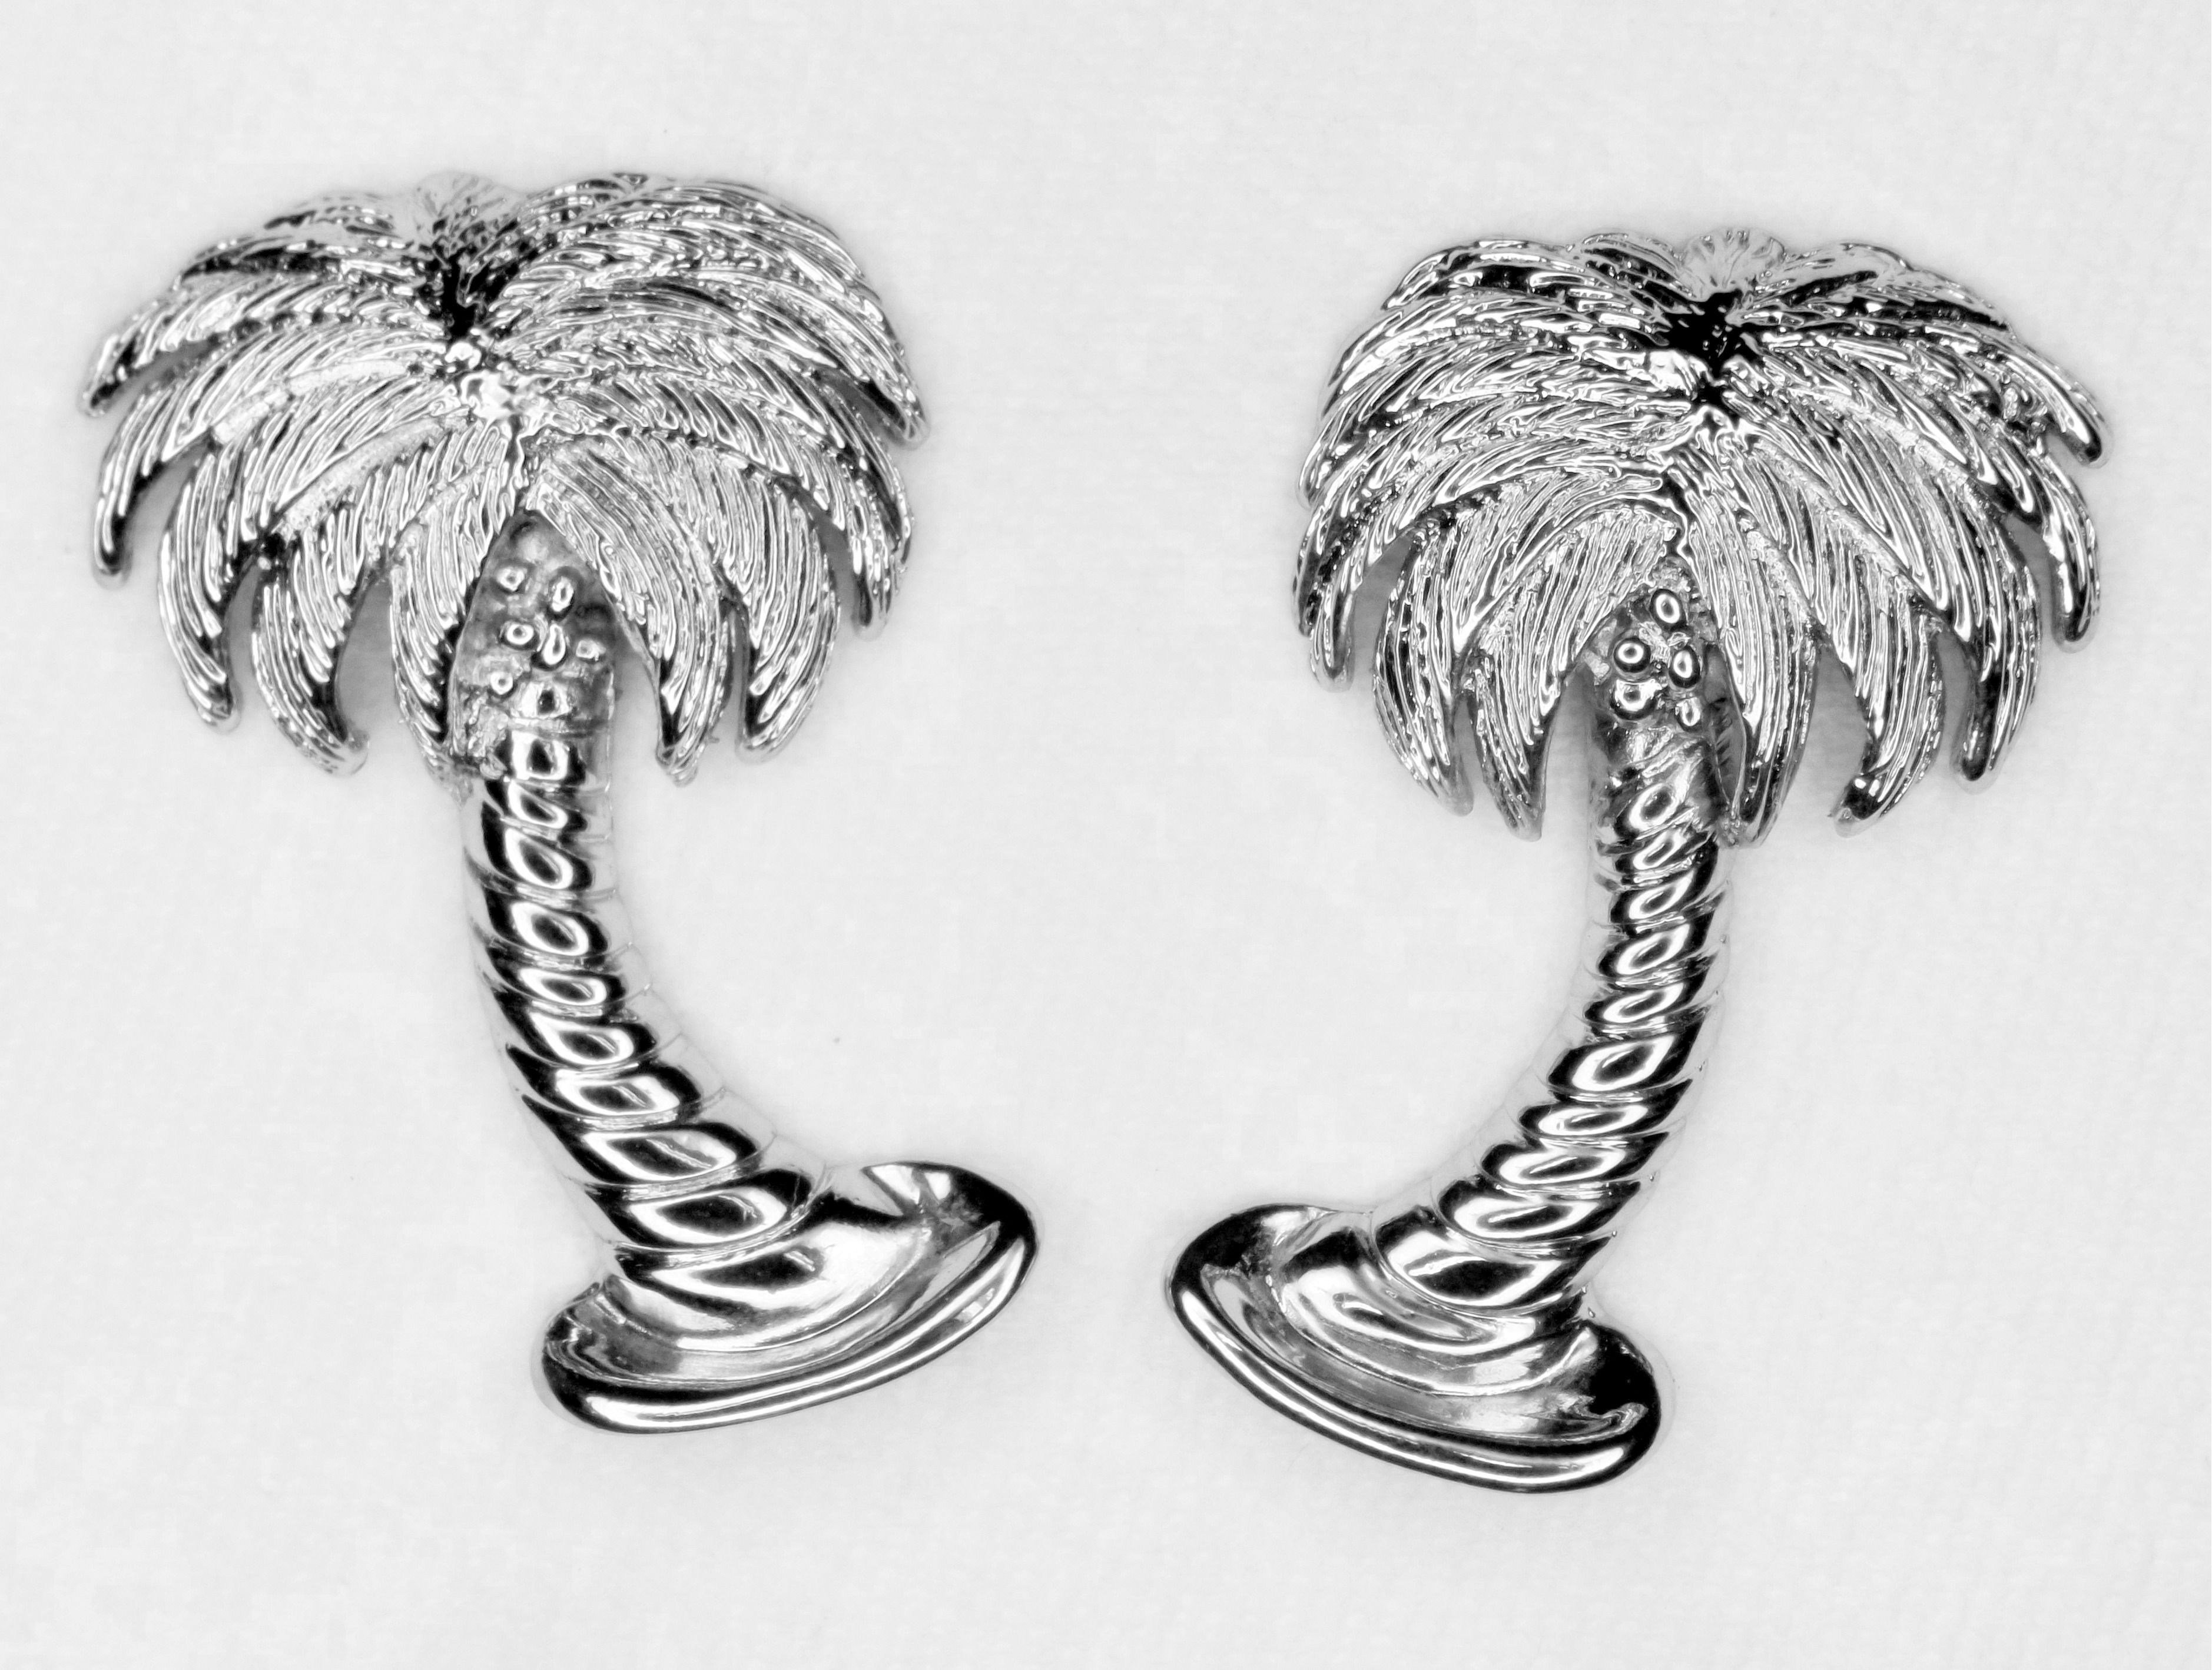 Palm Tree Cabinet Pulls Cast In Fine Pewter Finished Brushed Nickel Chrome Or